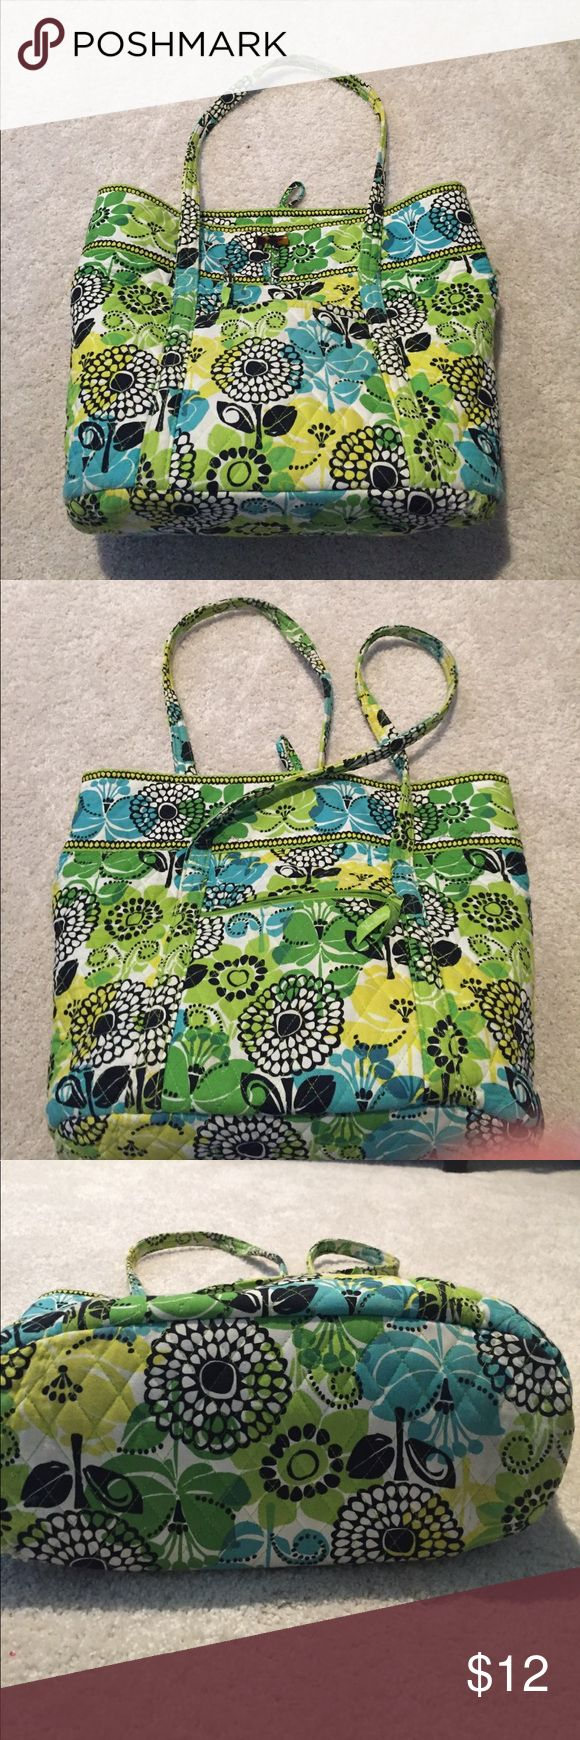 Vera Bradley Tote Bag Used - tear in seam on side but could probably be repairs . Retired pattern Vera Bradley Bags